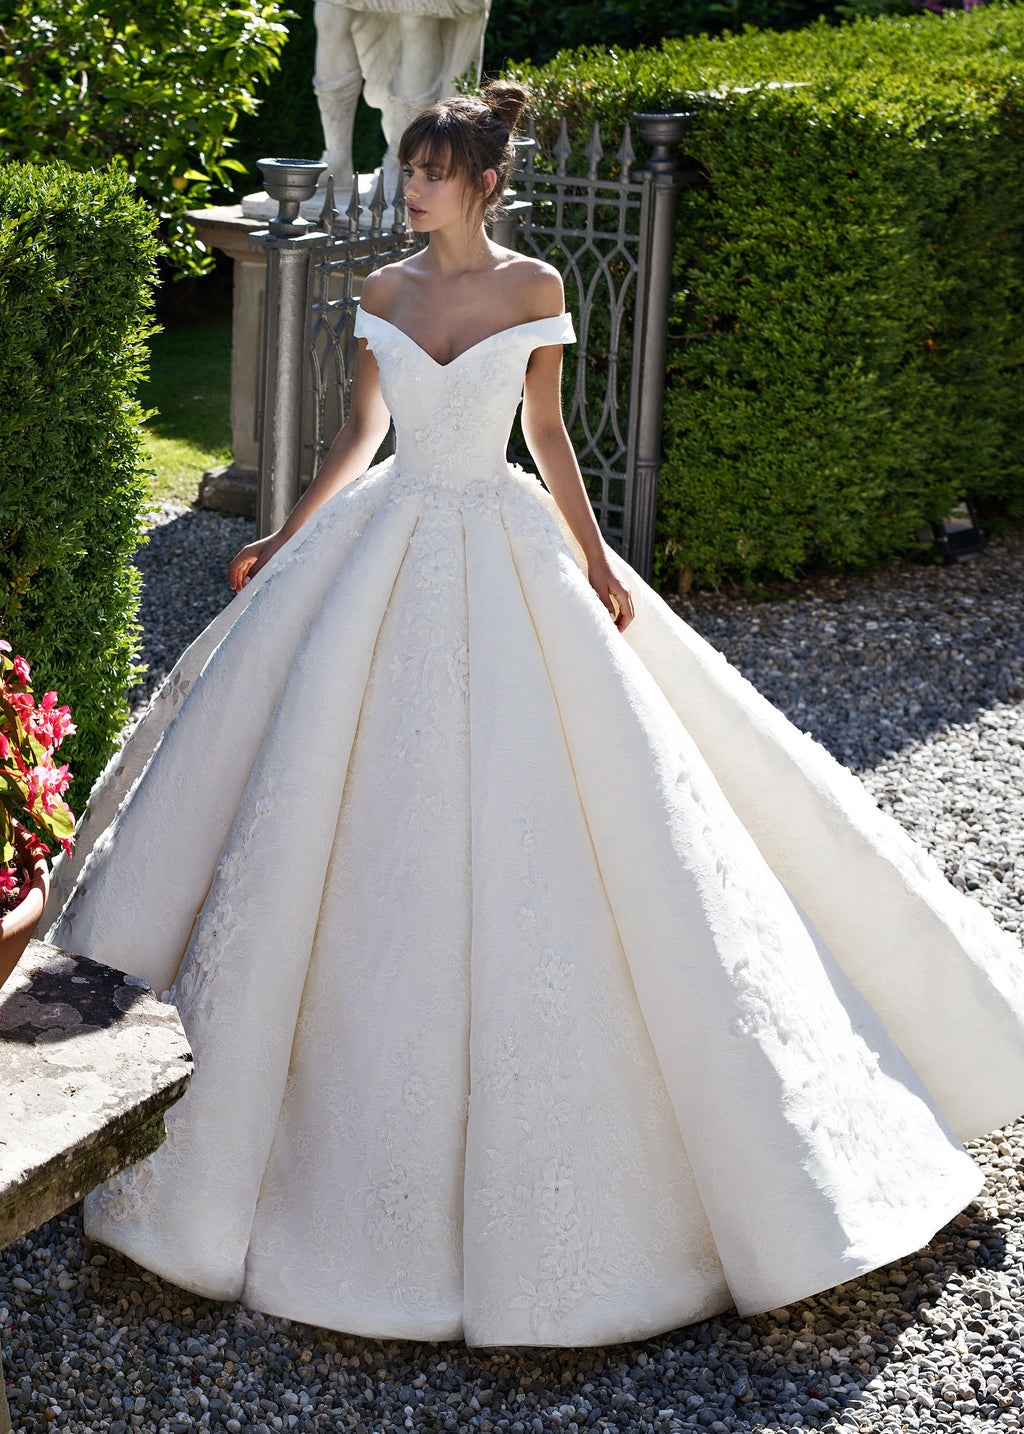 Middleton | Glamorous Off the Shoulder Ball Gown Wedding Dress